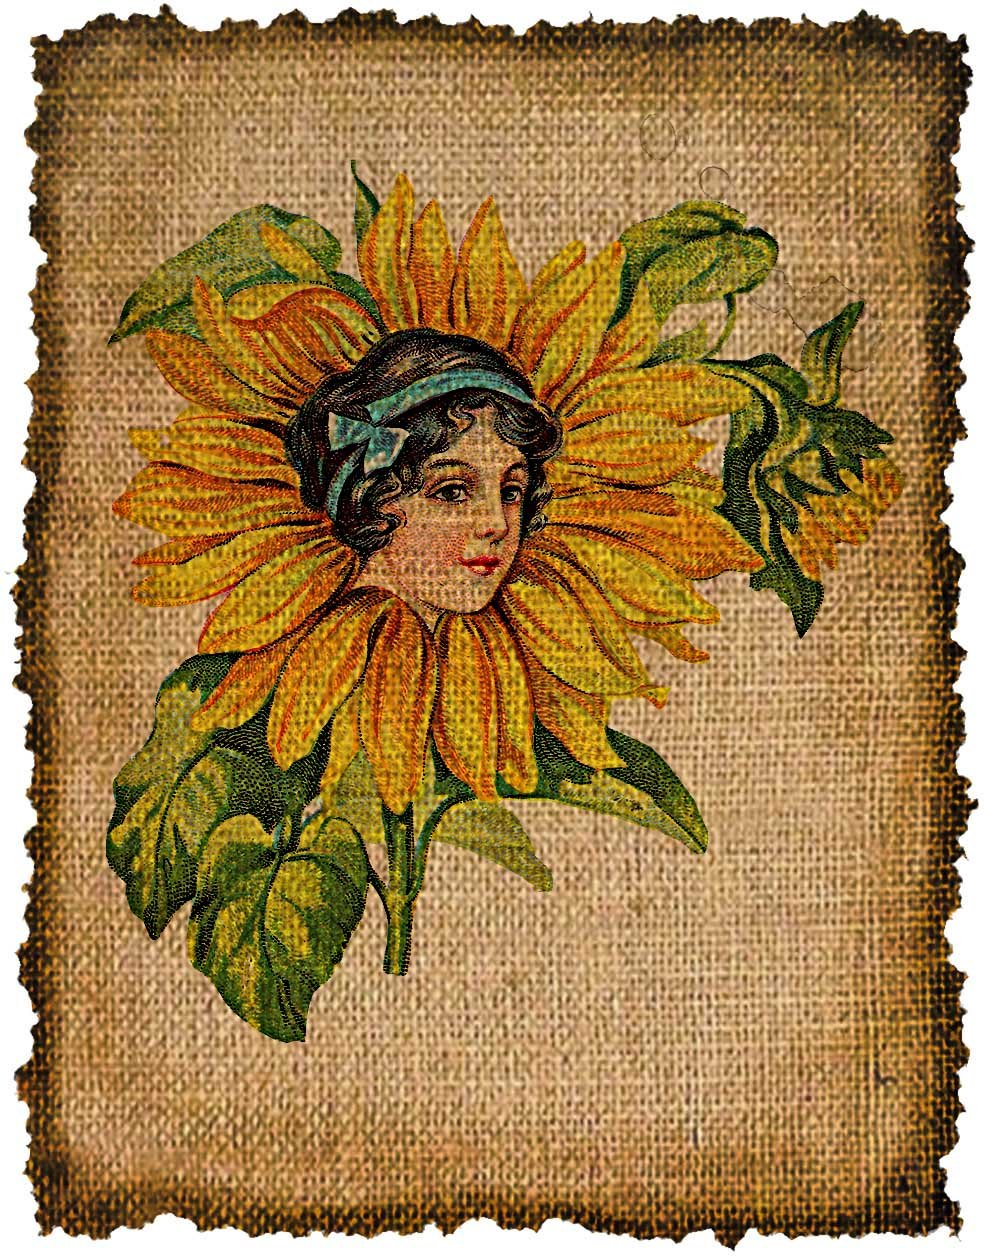 Vintage, Flower Fairy, Ephemera, Altered, Iron on, Digital Image No.417